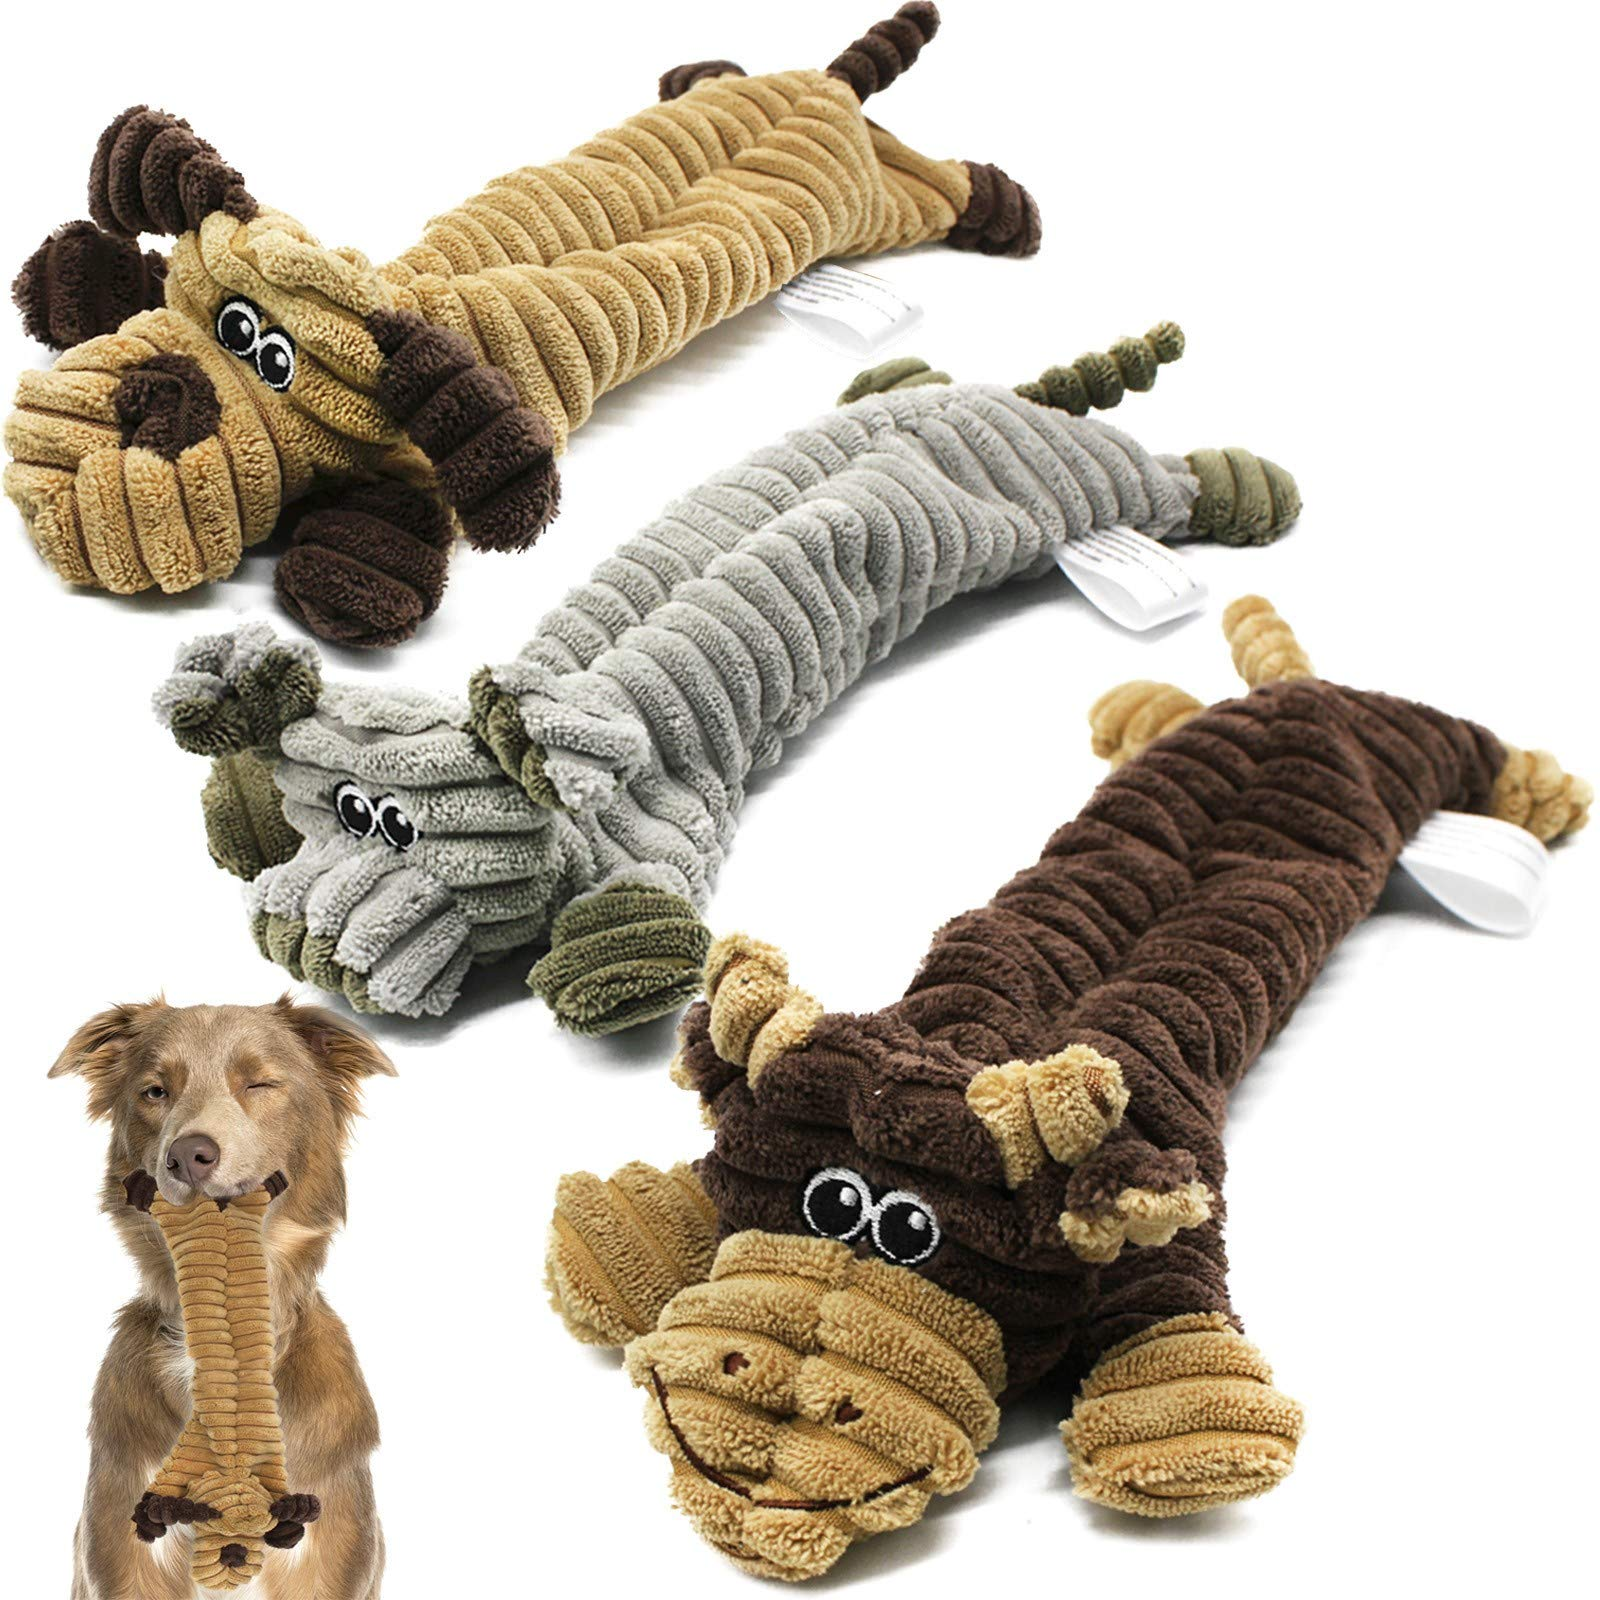 Dog Squeaky Toys 3 Pack,Crinkle No Stuffing Animals Dog Toy for Puppy Teething,Durable Interactive Dog Chew Toys for Dogs Training